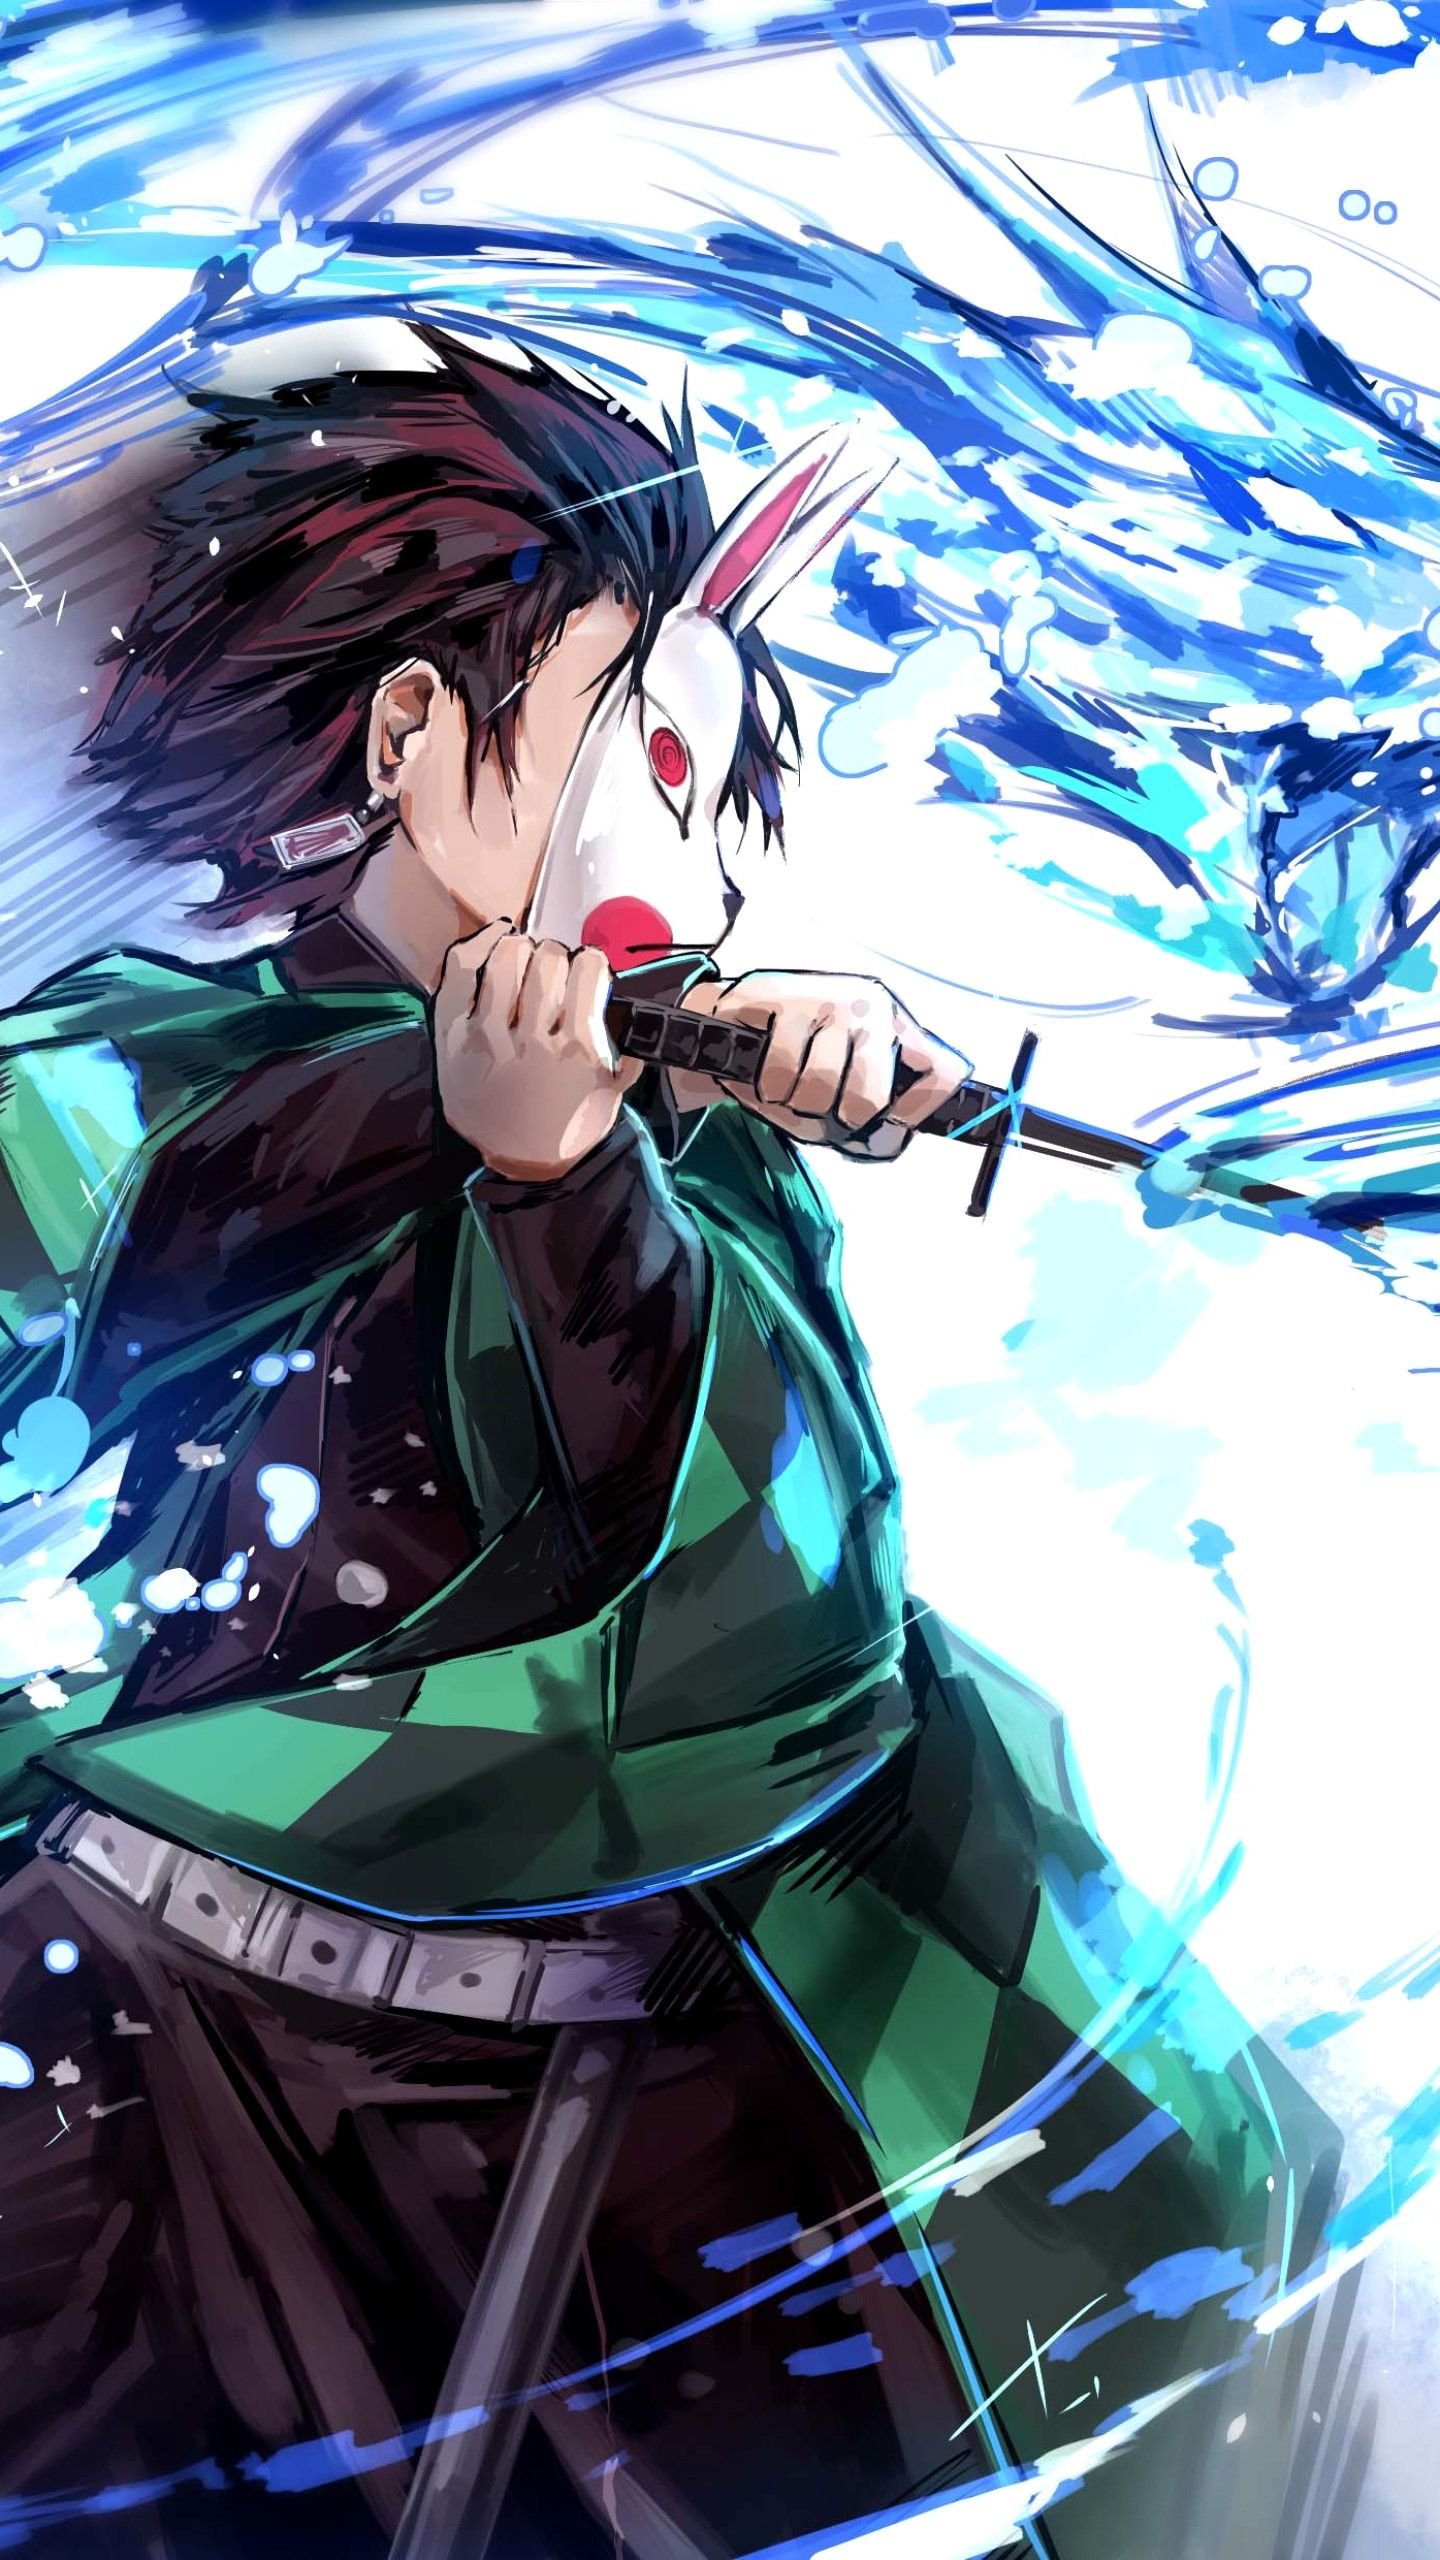 Luxury Anime Demon Slayer Kimetsu No Yaiba 1440 2560 Wallpaper